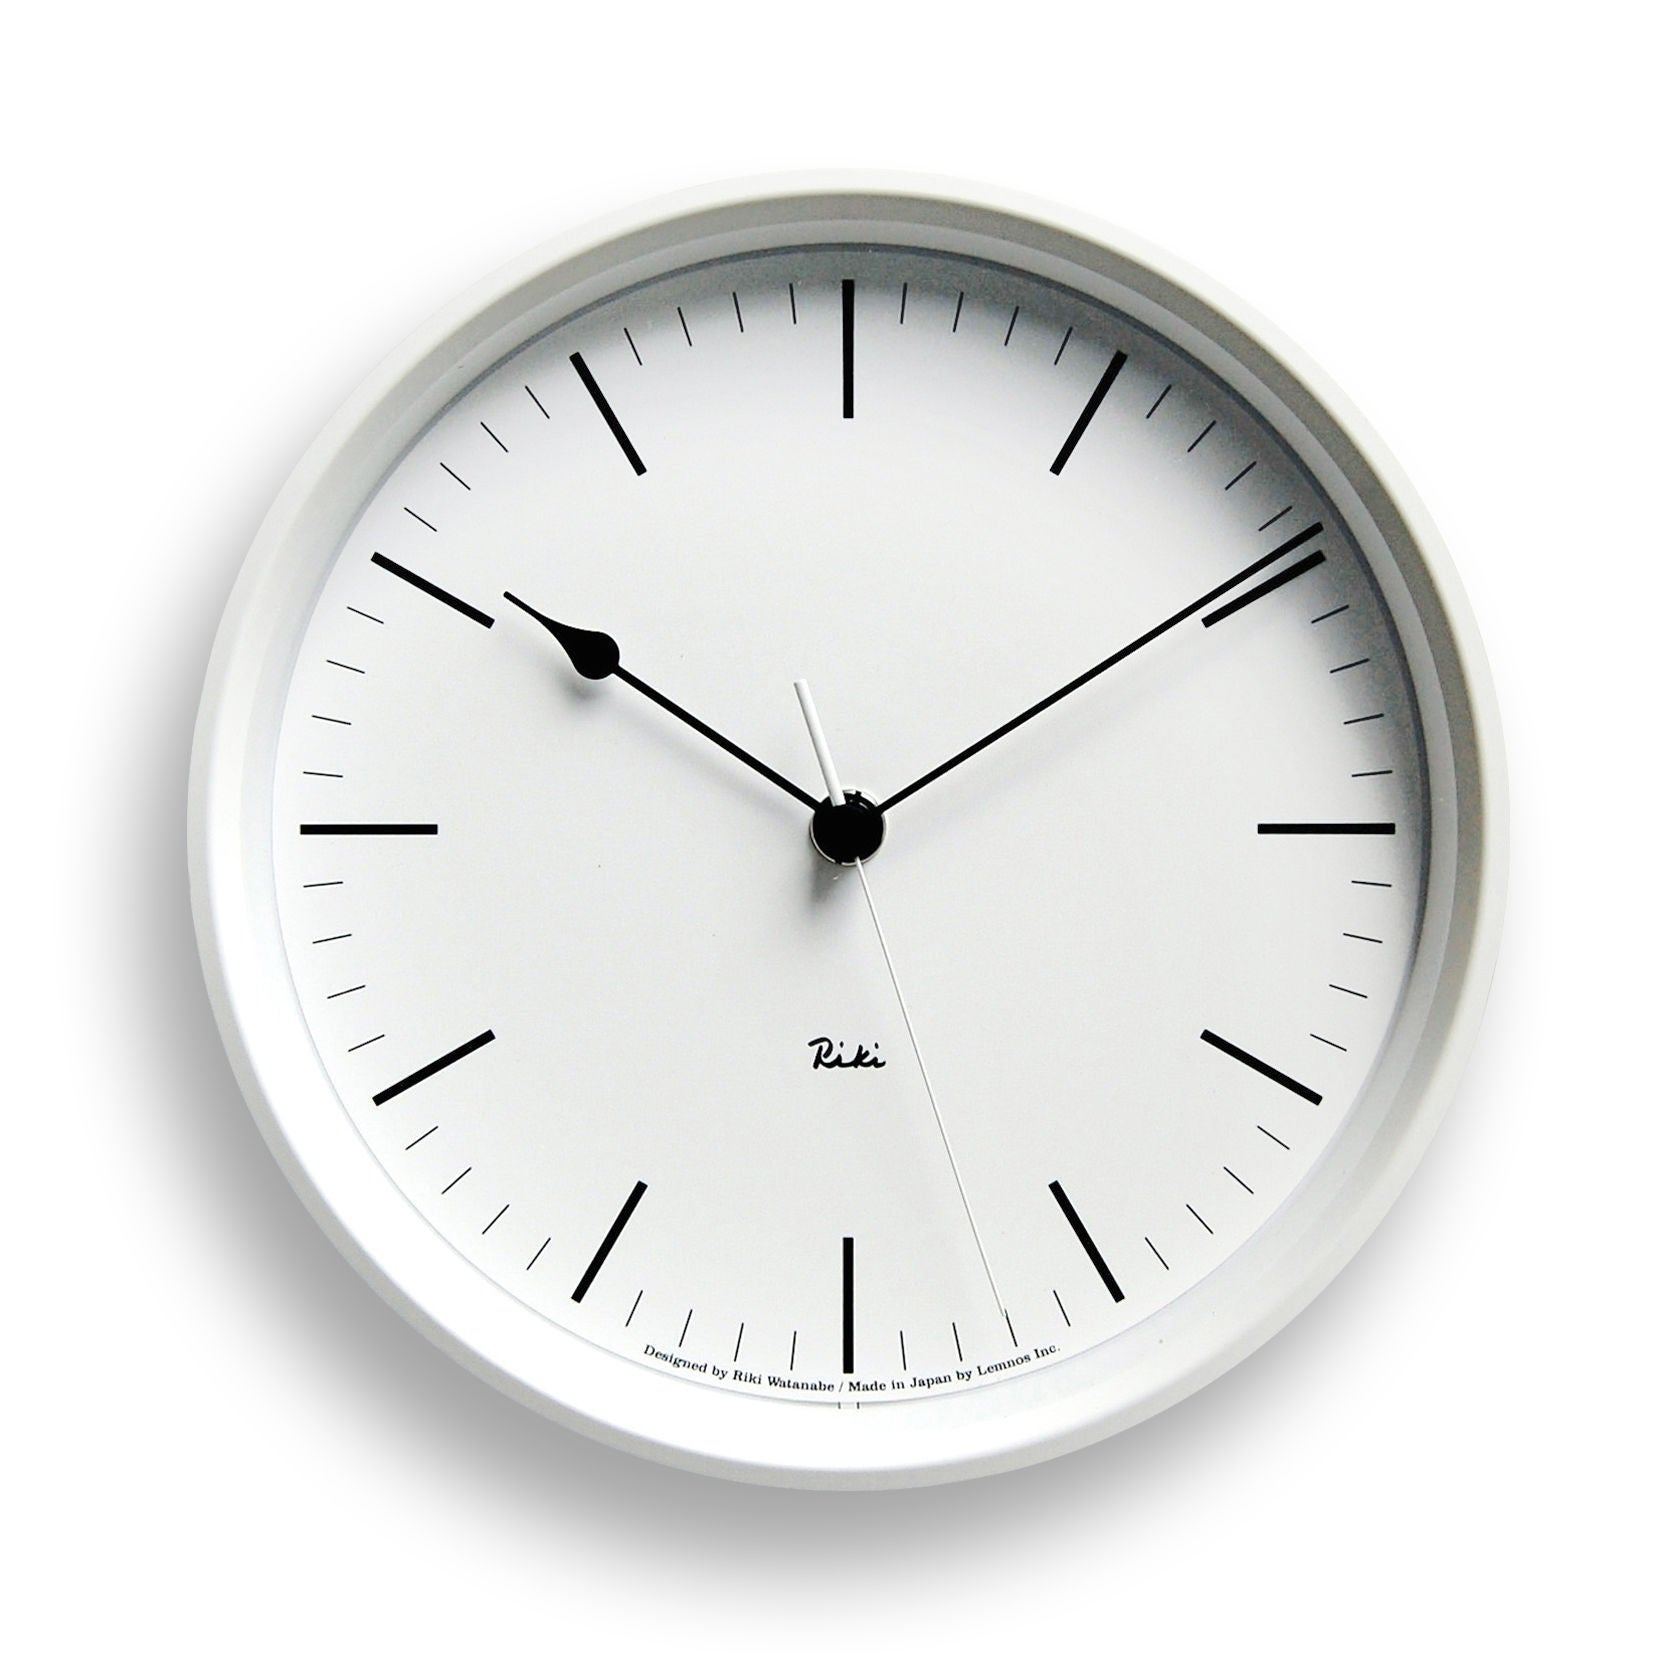 Riki Steel Line Clock in White design by Lemnos